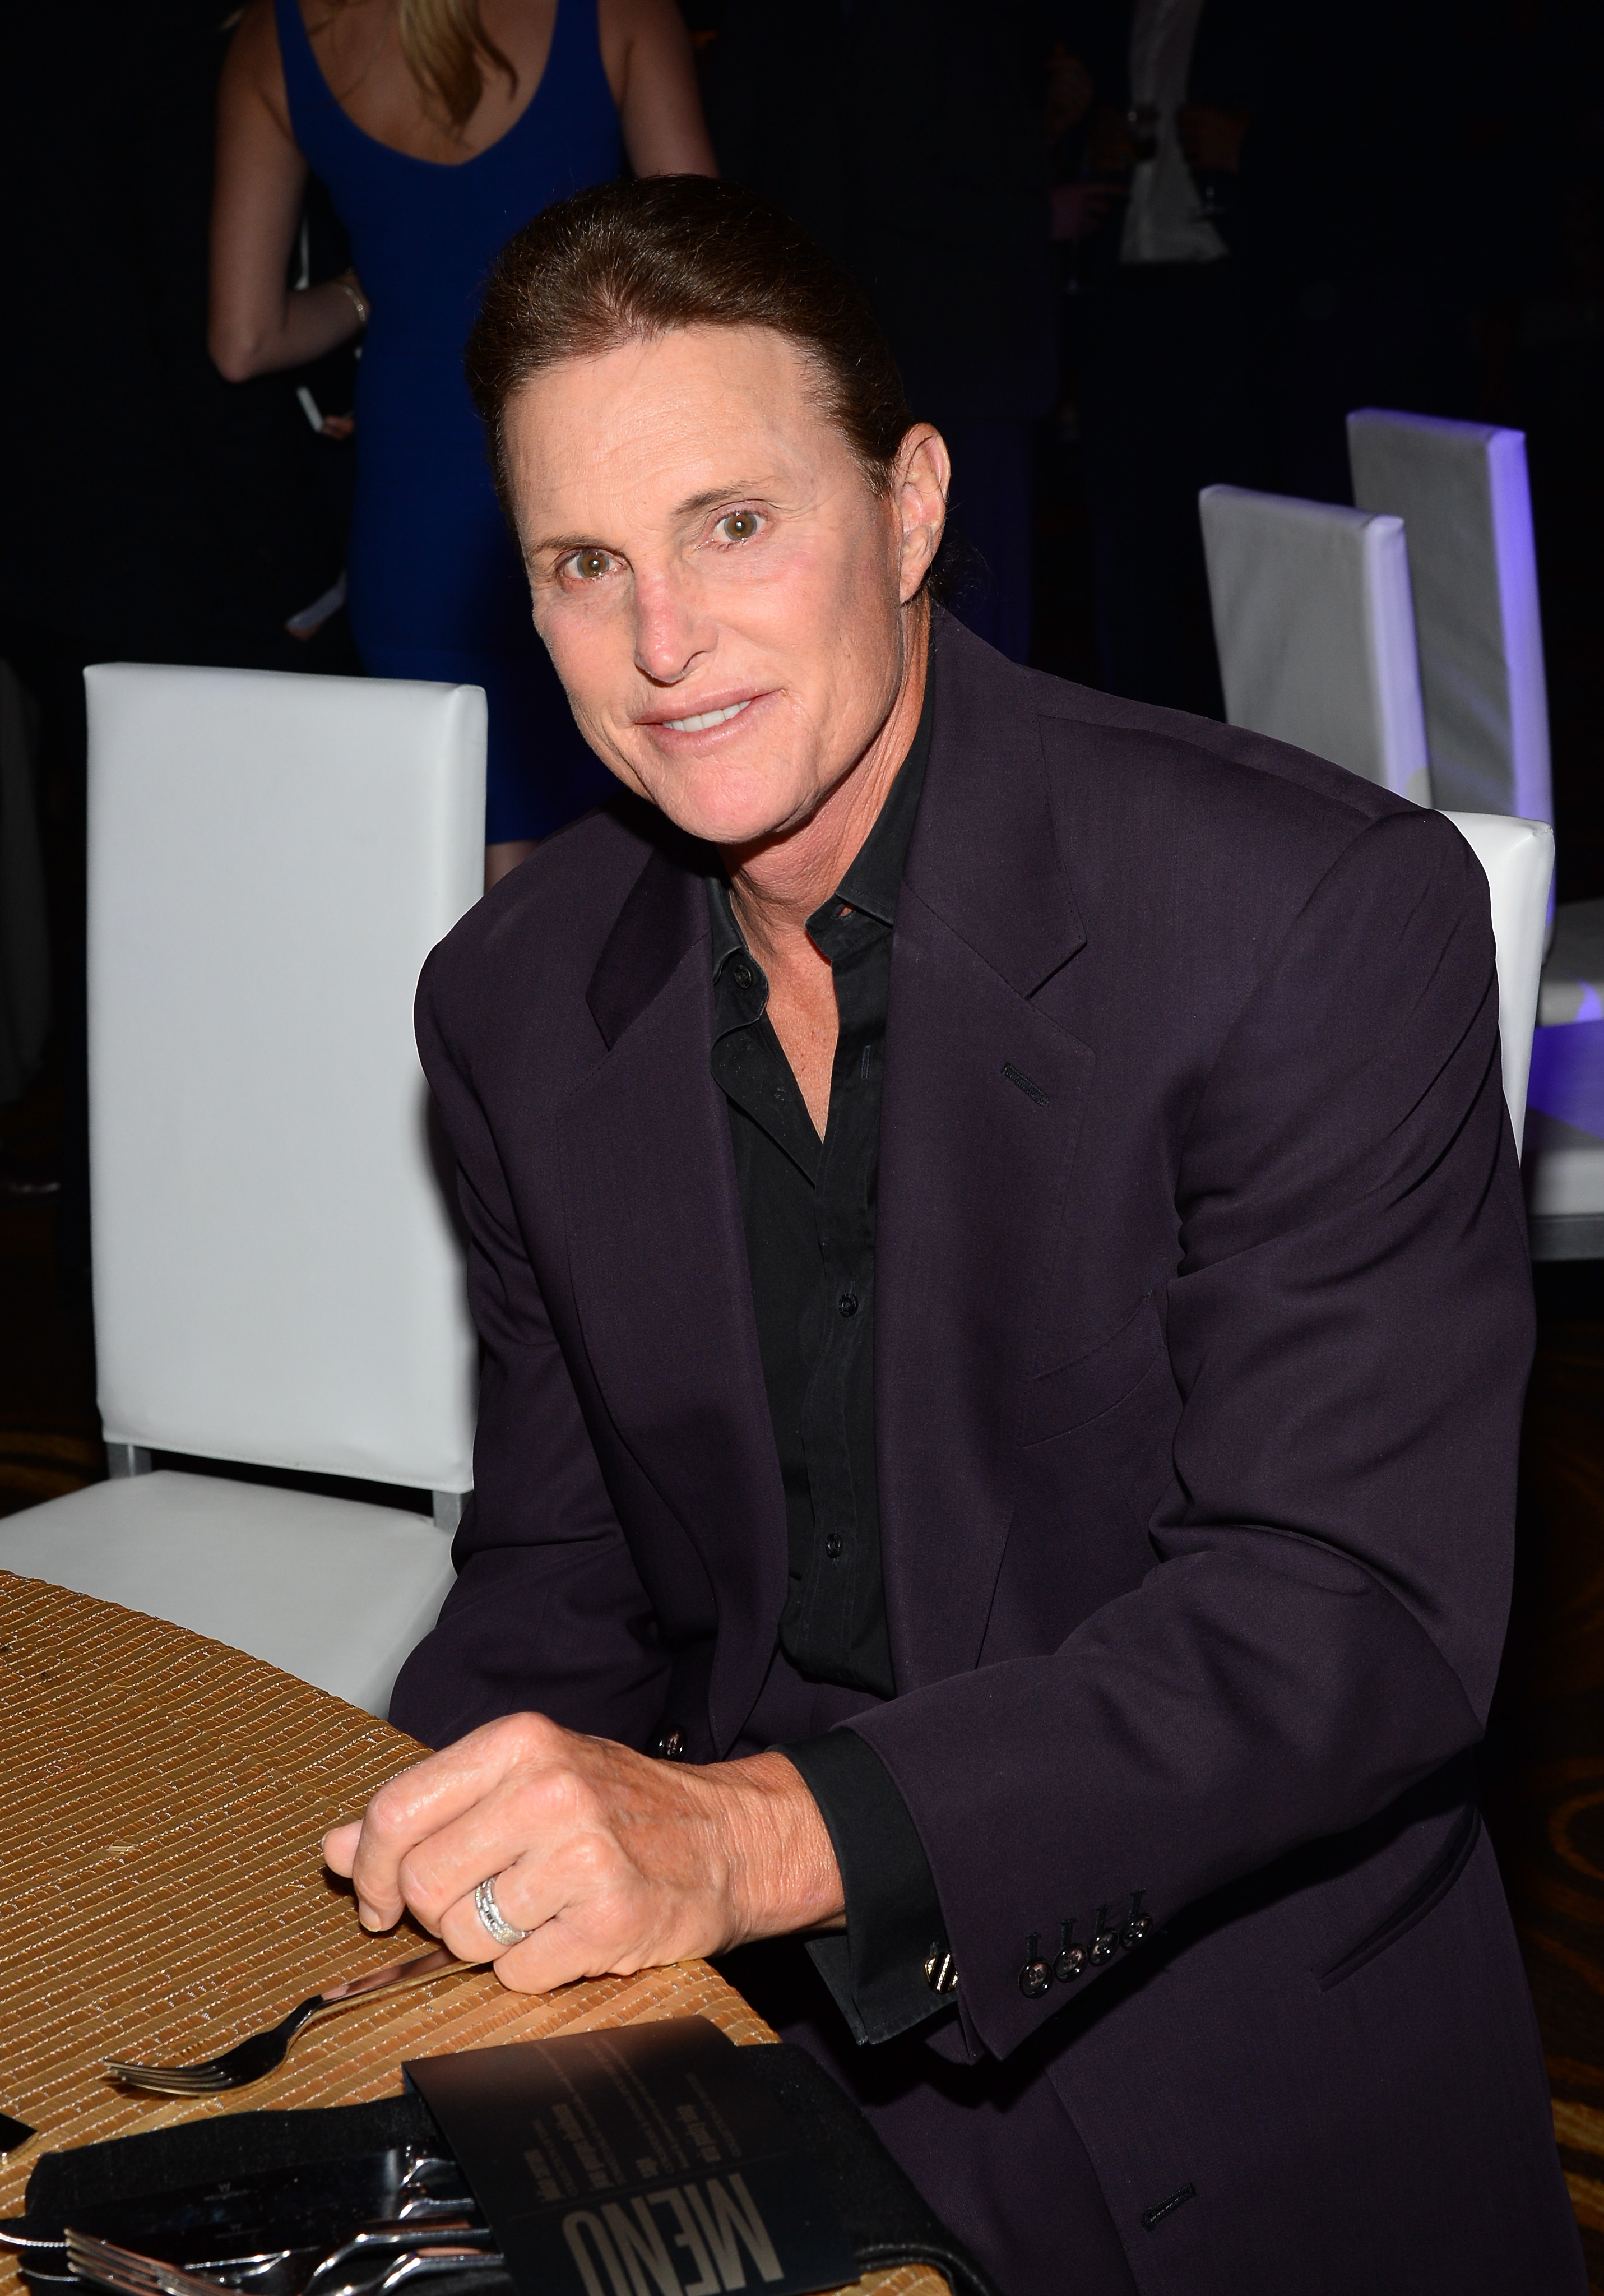 Television personality Bruce Jenner attends the 13th annual Michael Jordan Celebrity Invitational gala on April 4, 2014 in Las Vegas.